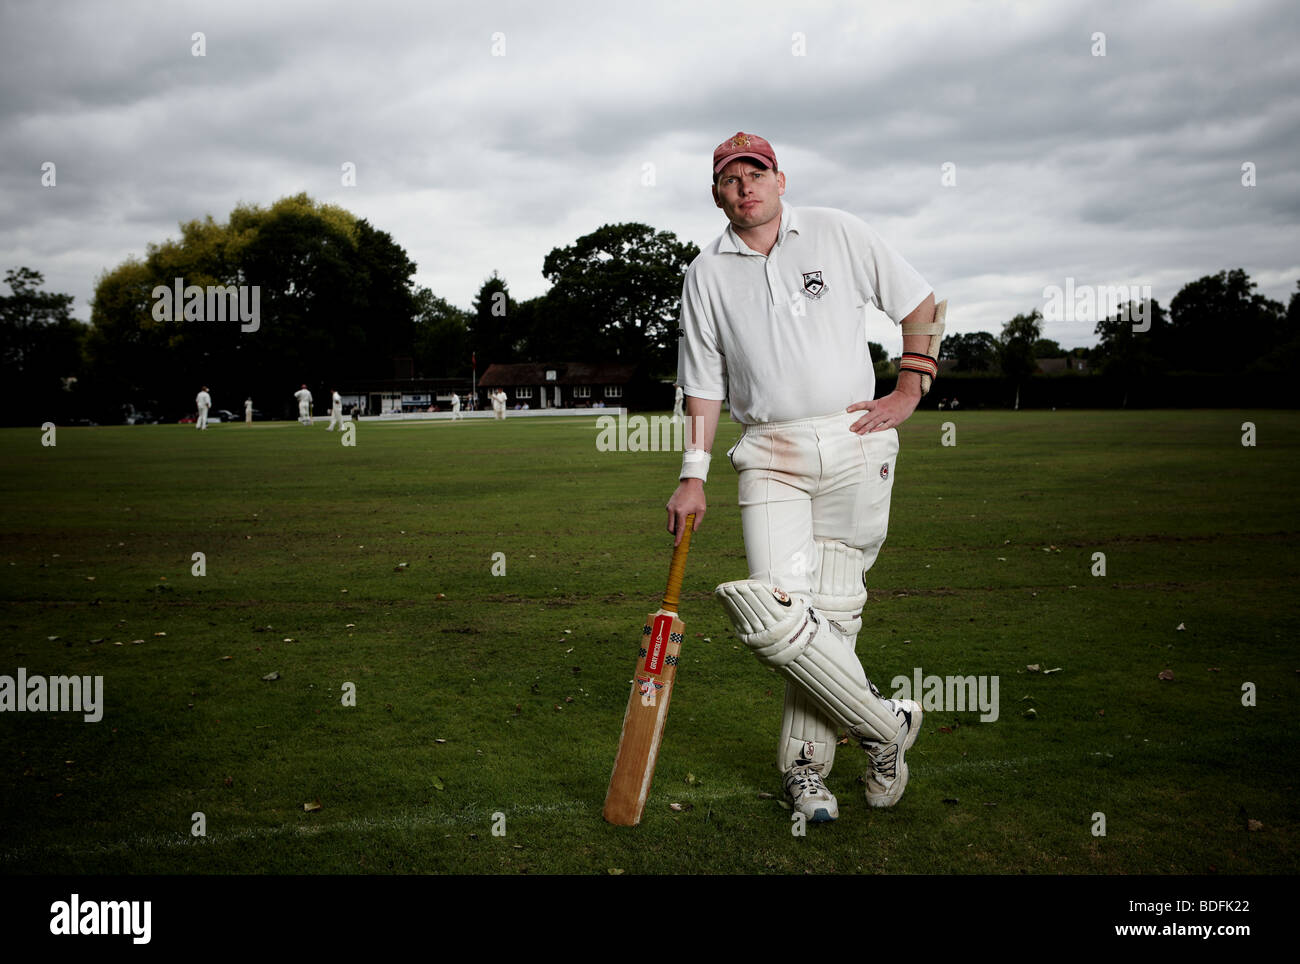 Members of Cockfosters Cricket club pose during a match - Stock Image